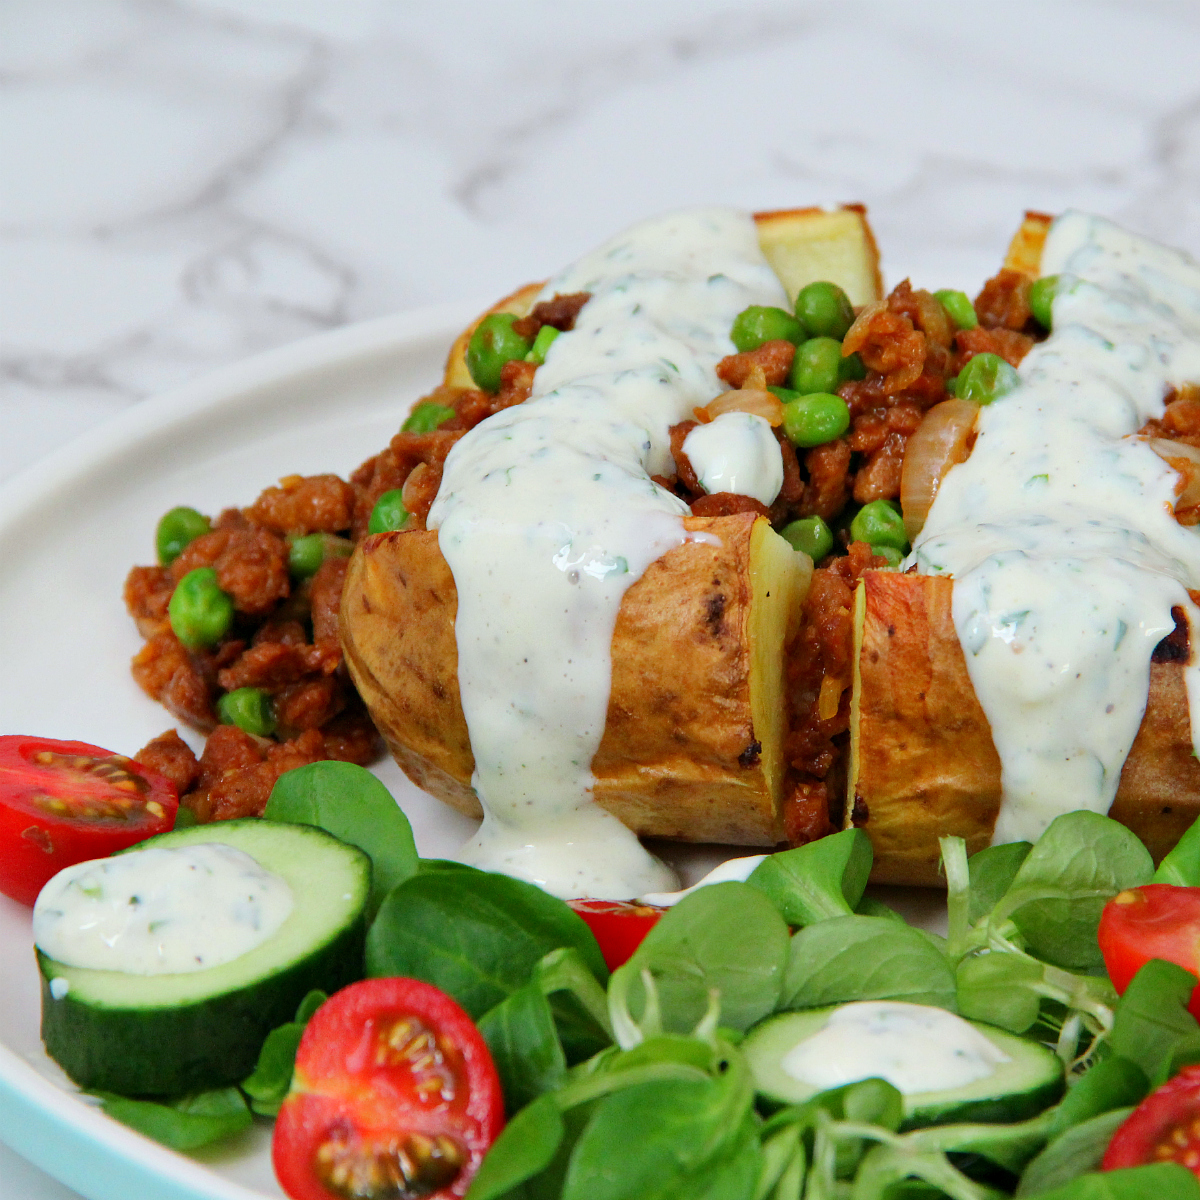 Soy mince & Pea stuffed baked potatoes - The Vegan Eskimo